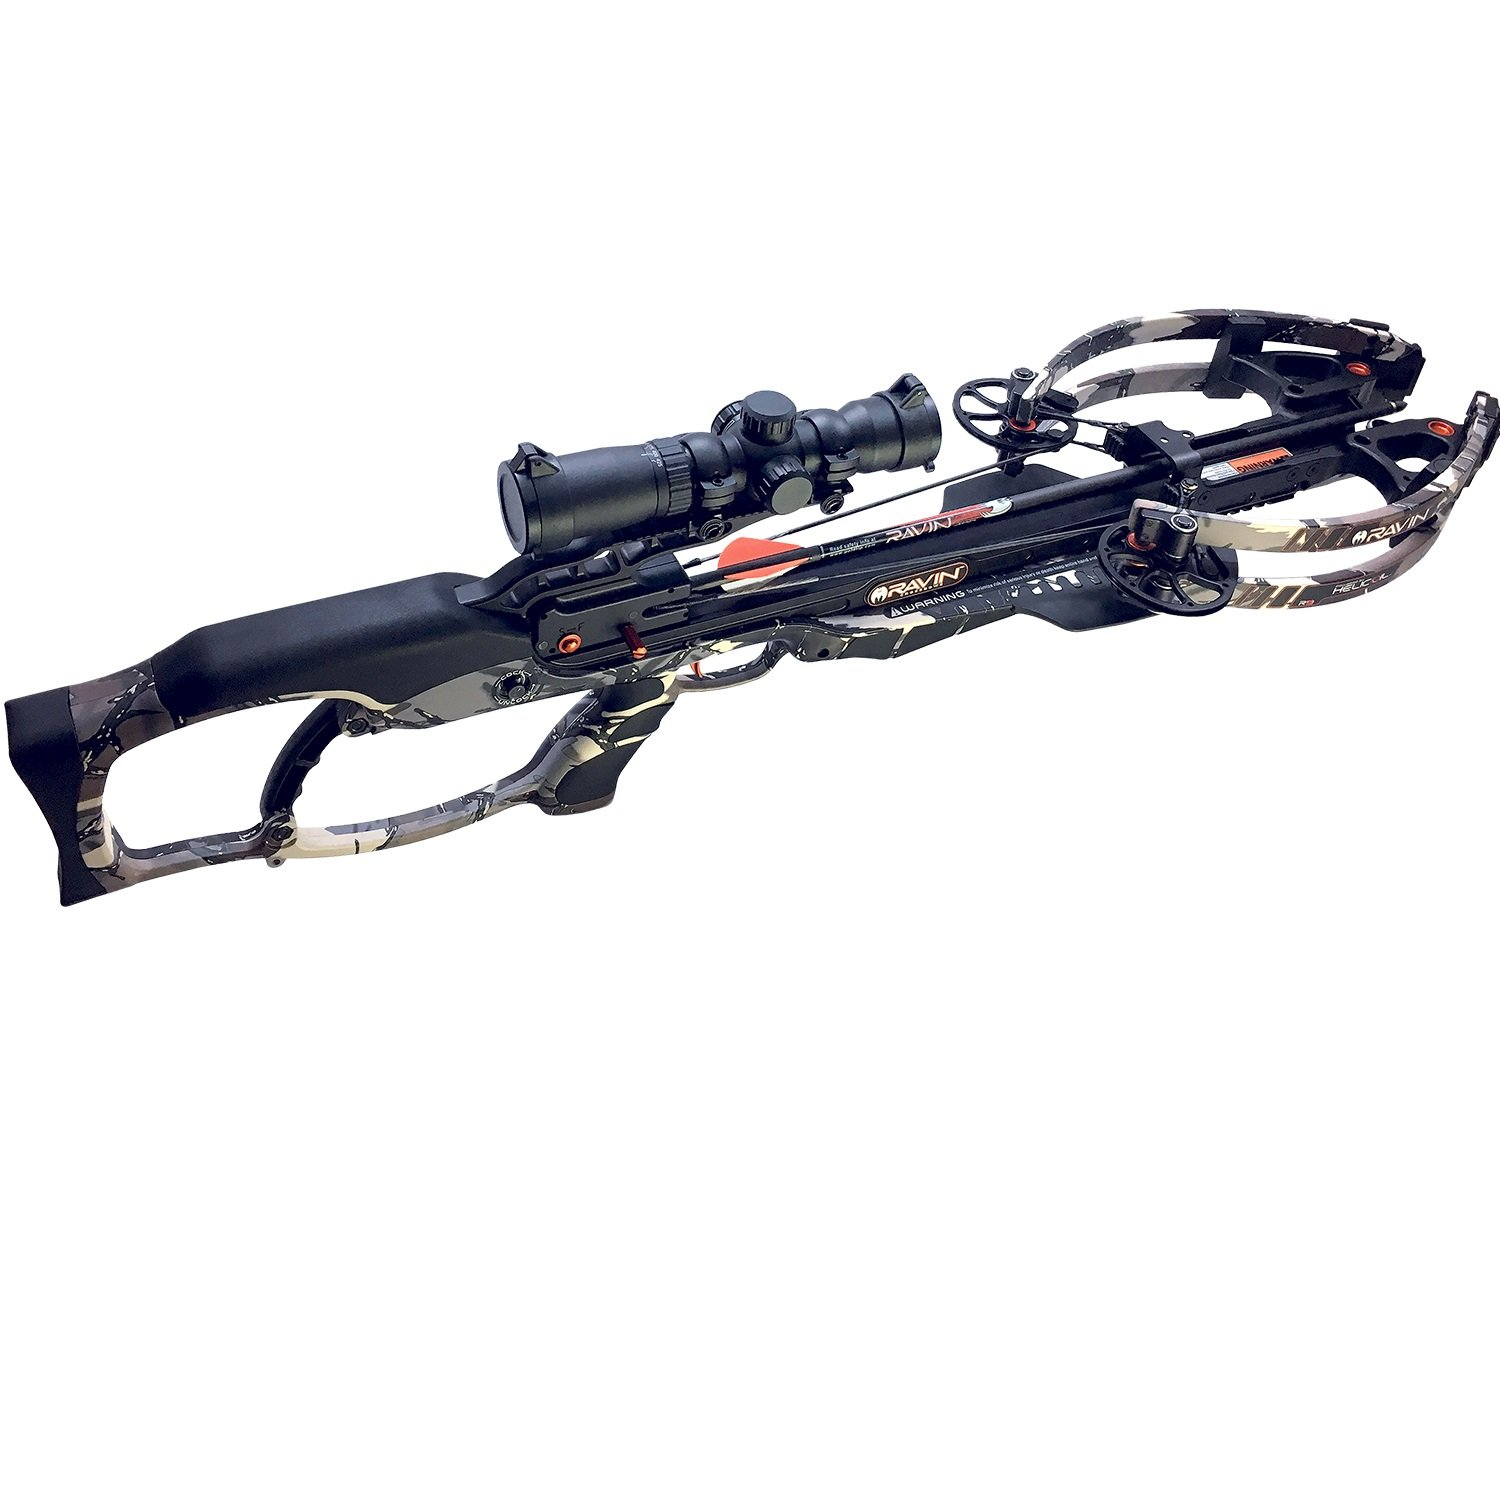 Ravin Crossbow 1108861 R110 Predator Crossbow Package, Camo, One Size by Ravin Crossbow